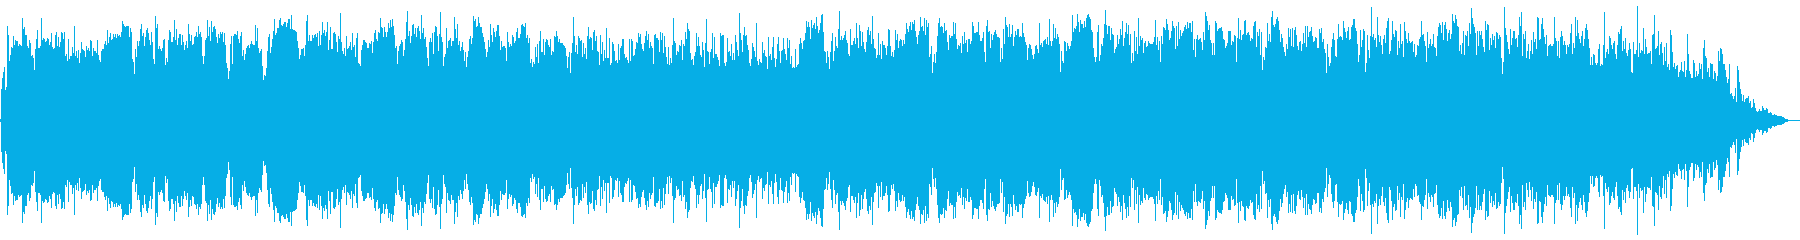 Calm music of a whistle in a quiet country atmosphere's reproduced waveform